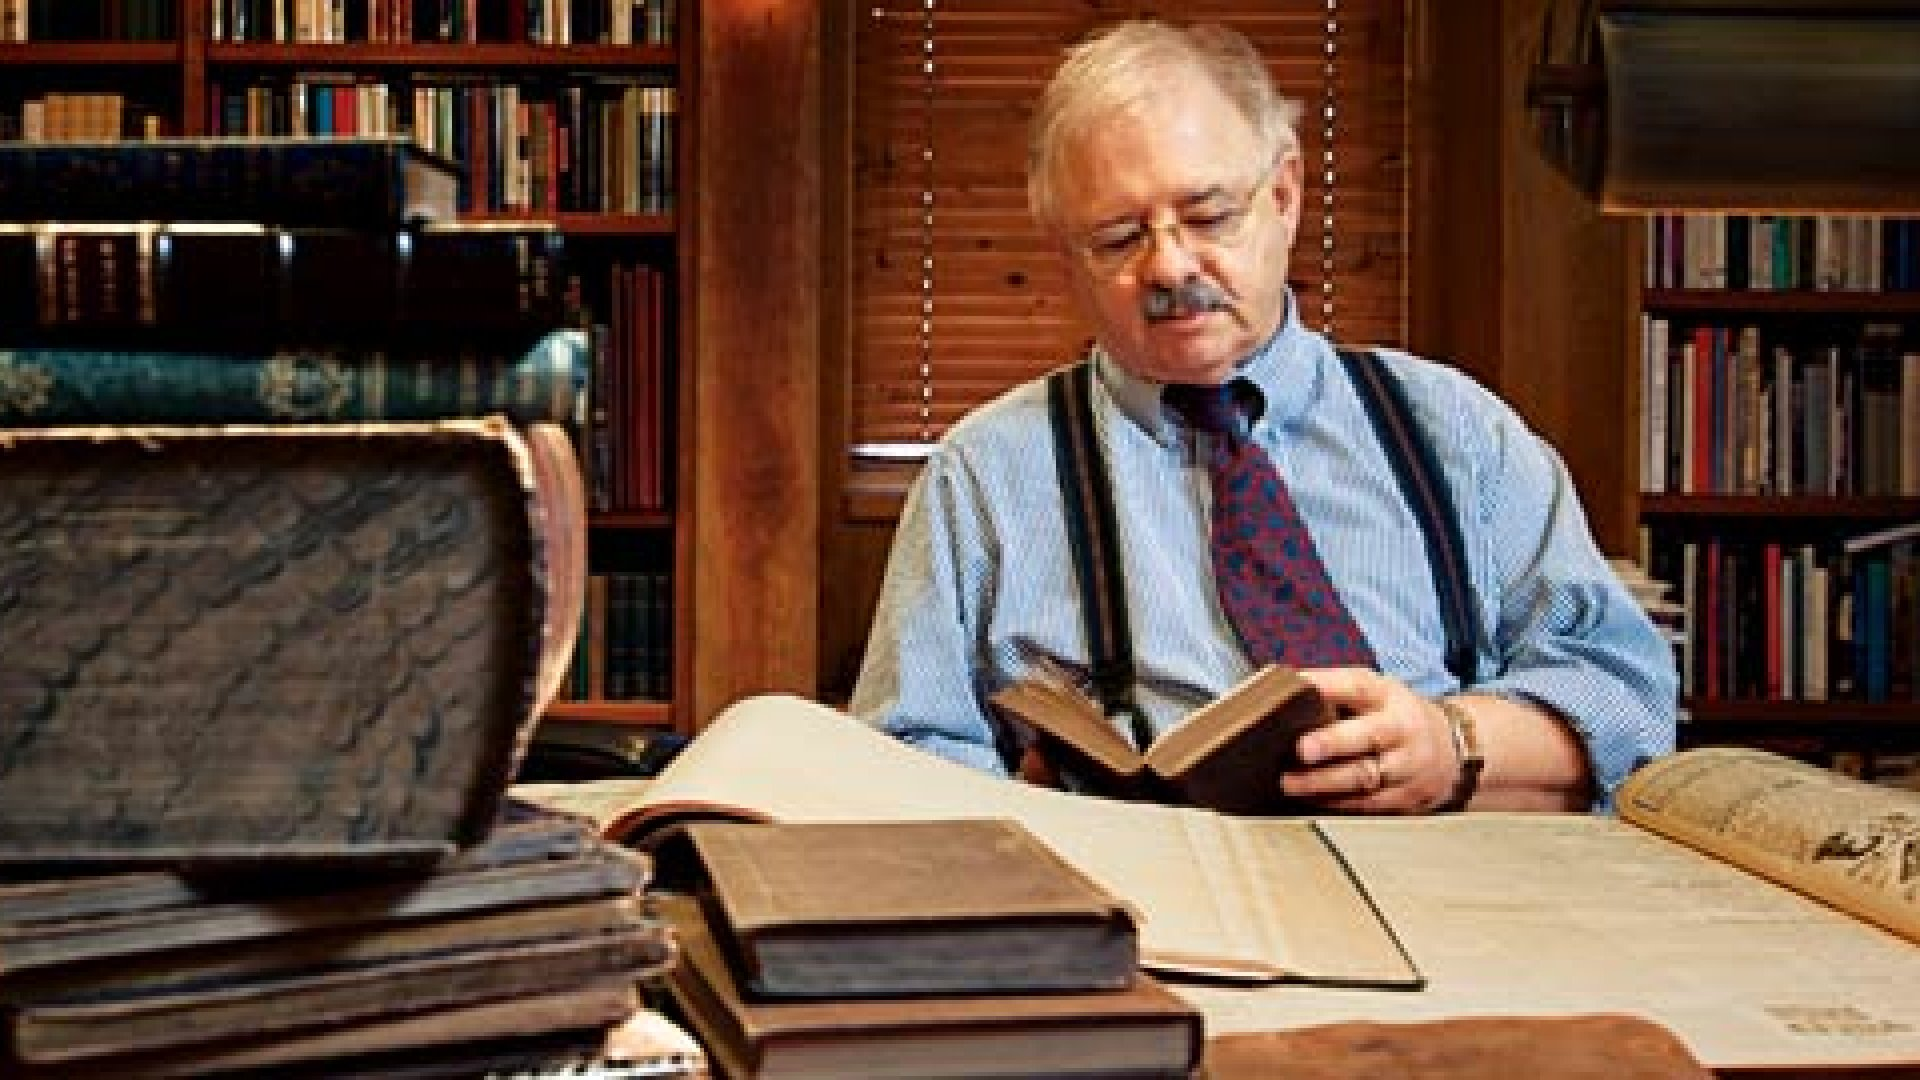 CEO Passions: Collecting Rare Books